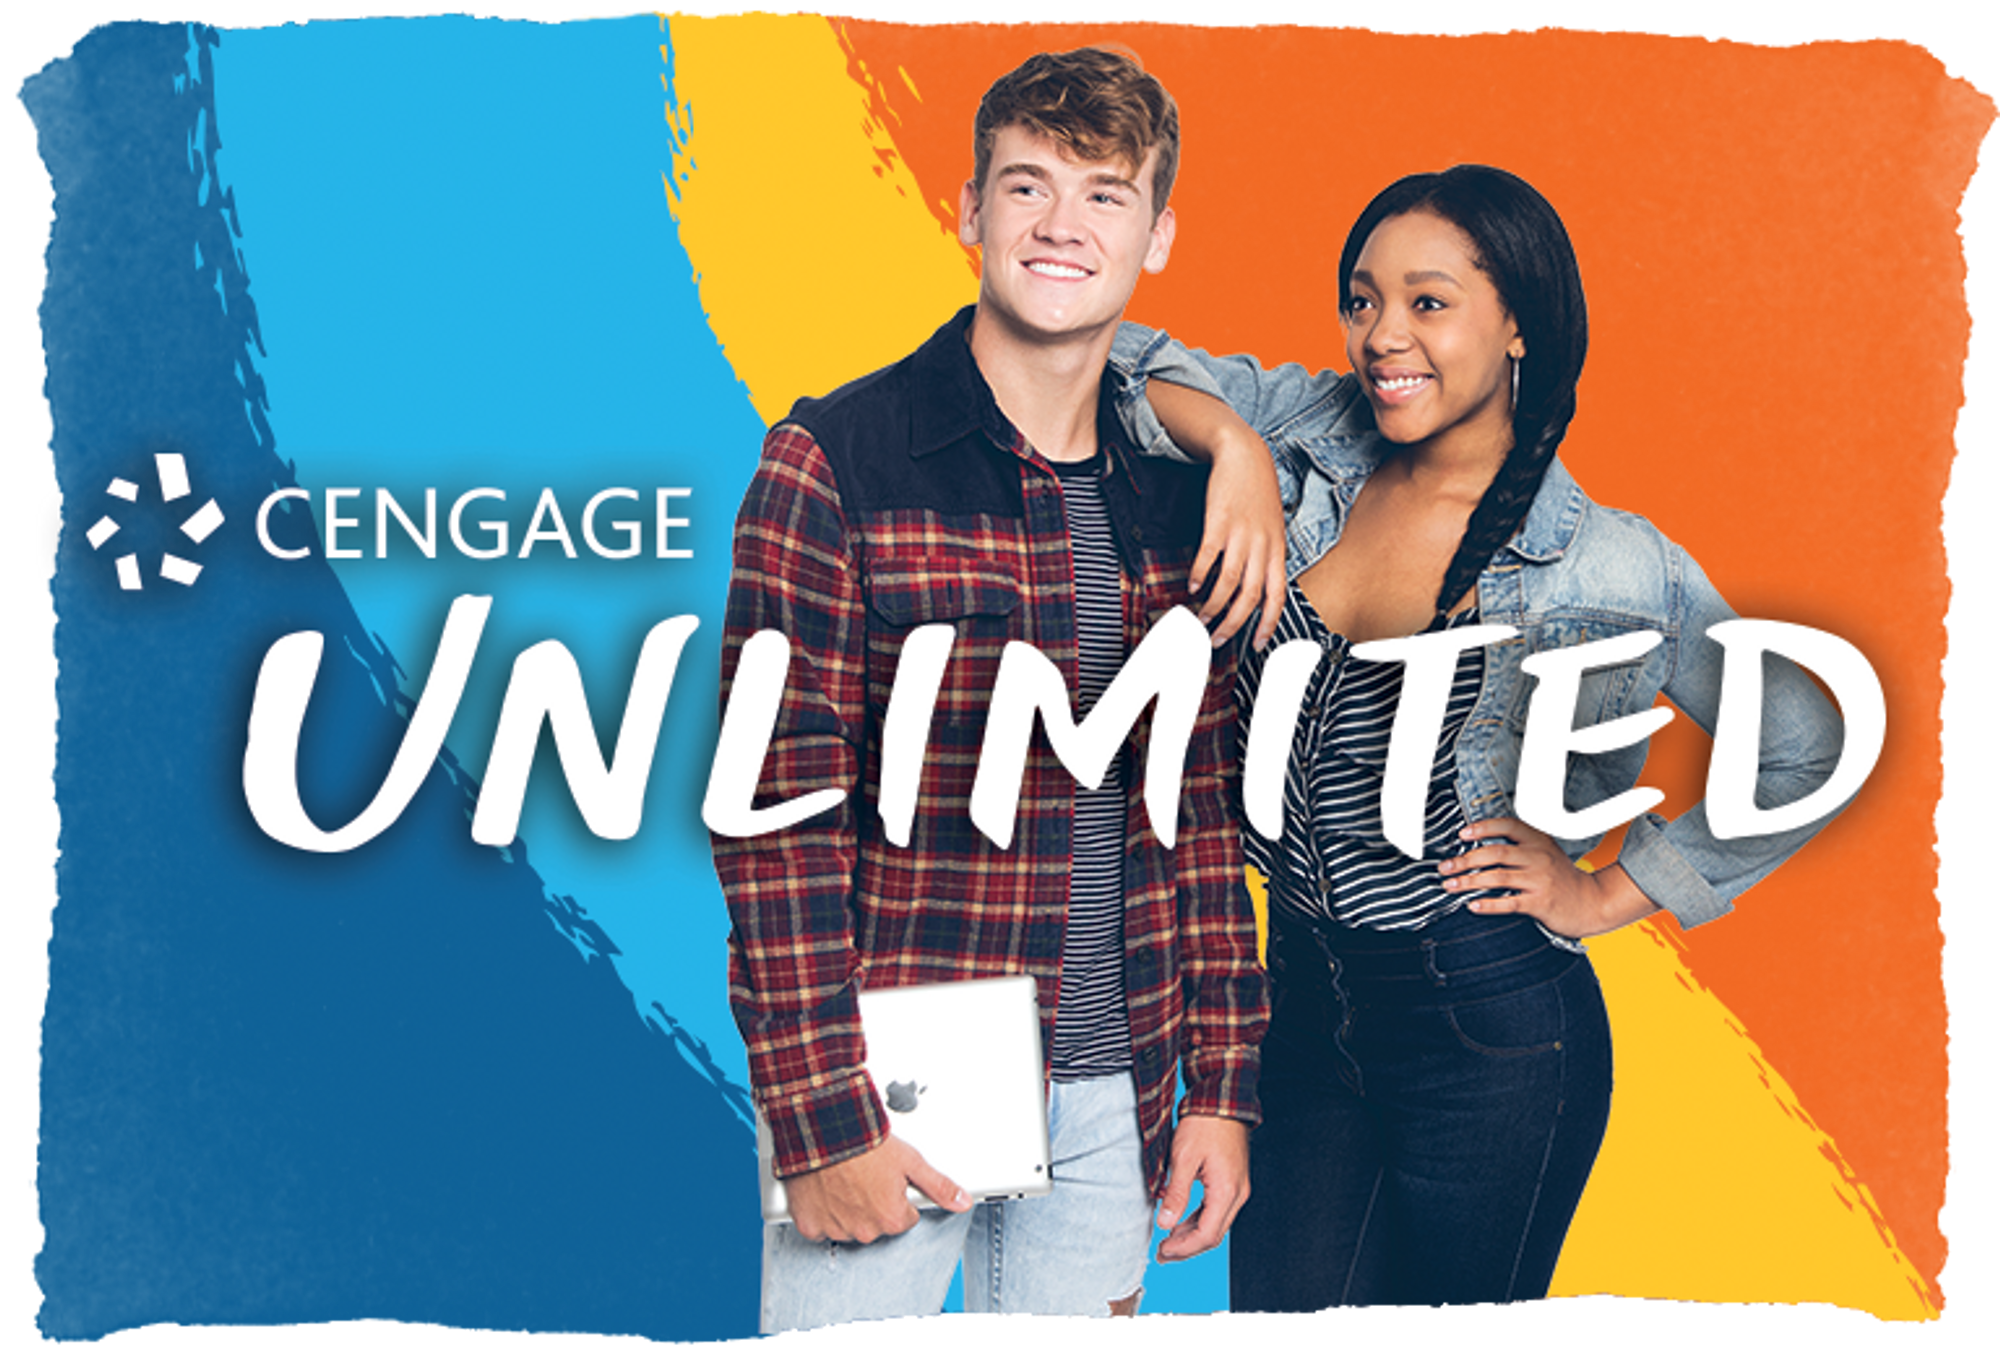 Cengage Unlimited